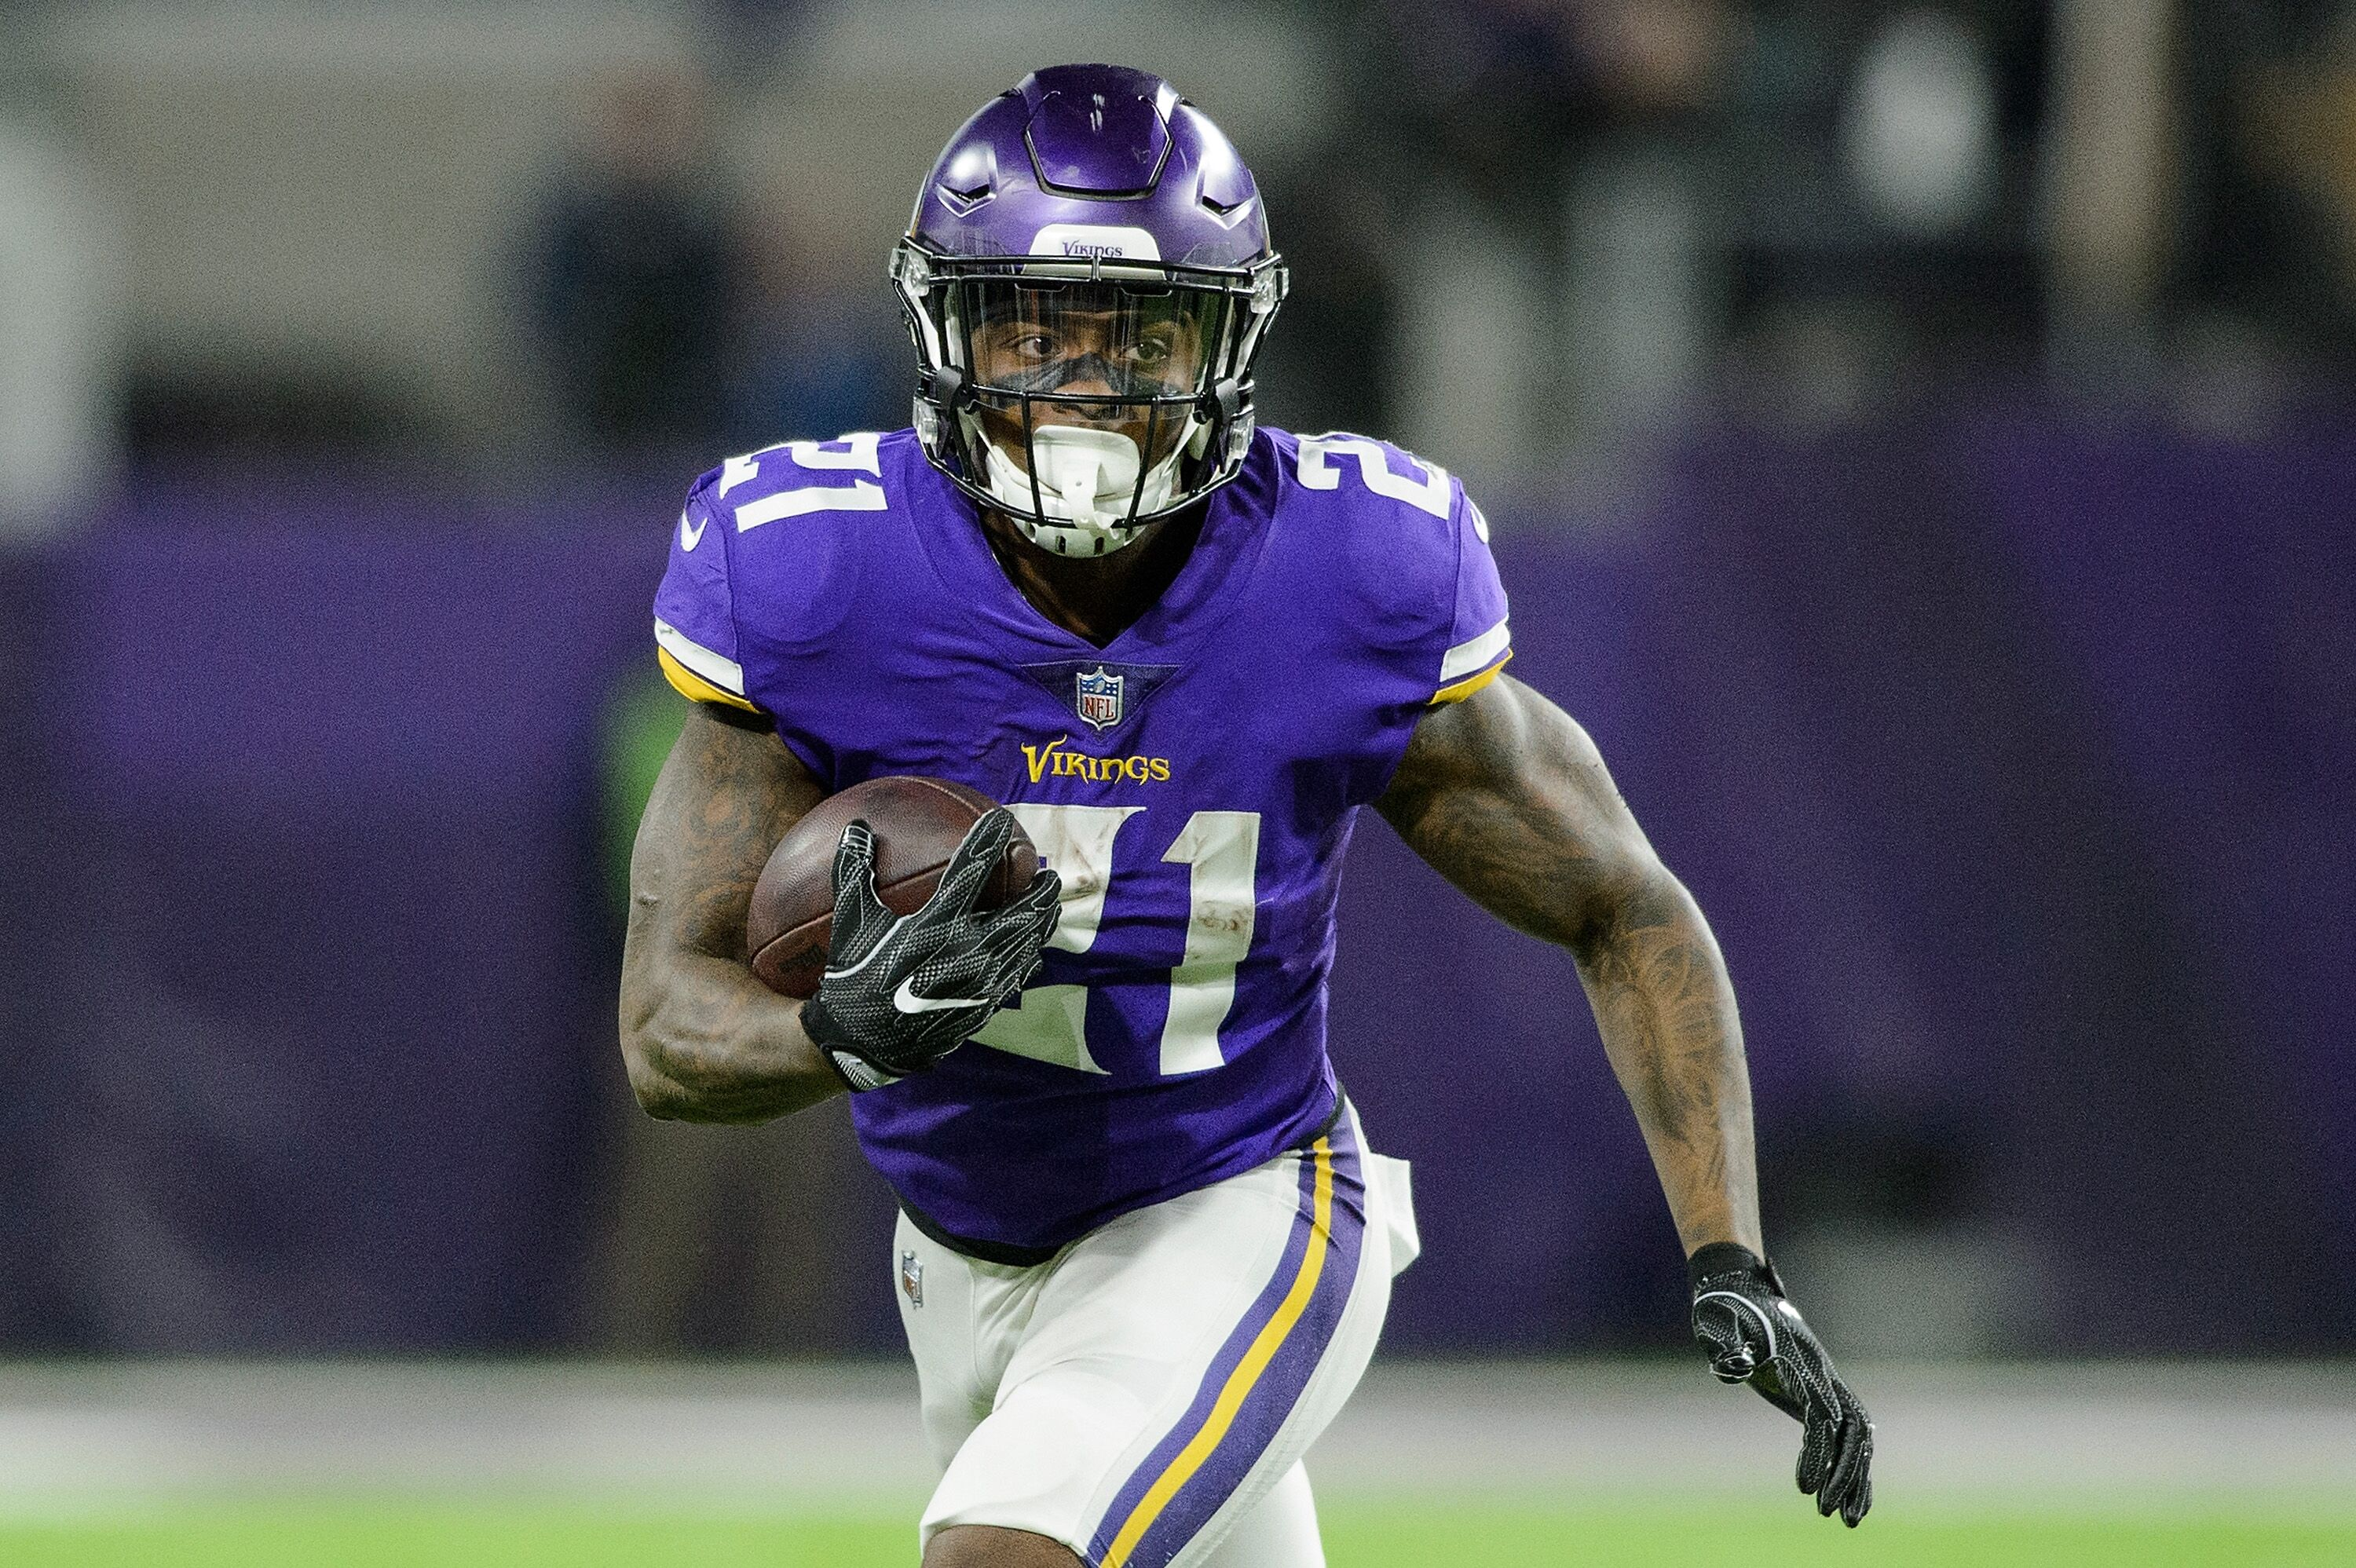 Running back Jerick McKinnon who signed a fouryear 30 million contract with the 49ers in March said the team is focusing on reaching the Super Bowl